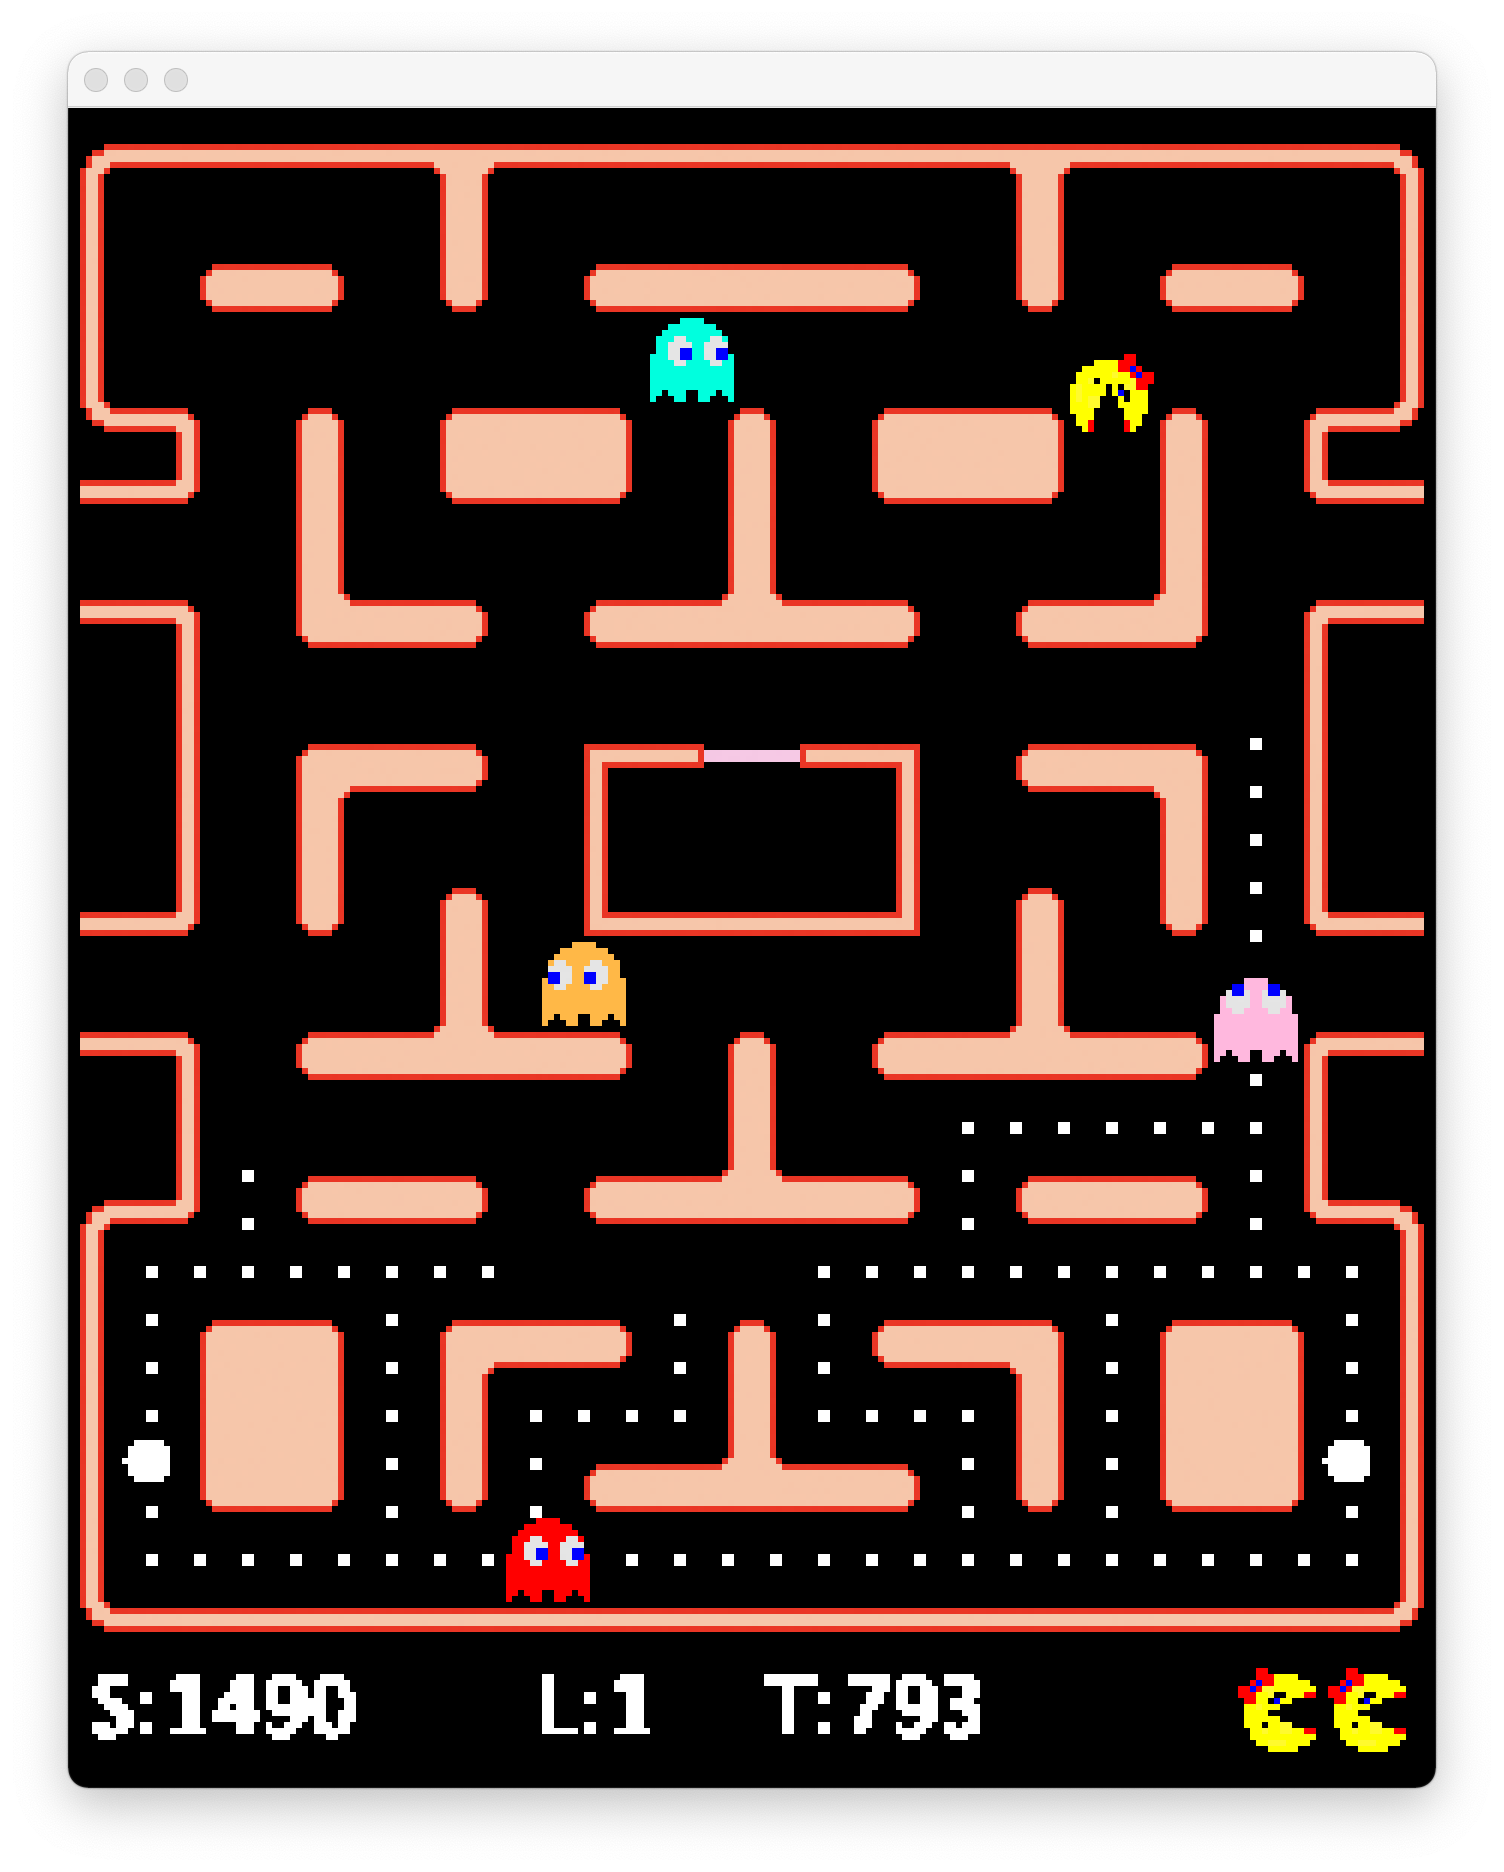 MsPacMan Vs Ghosts